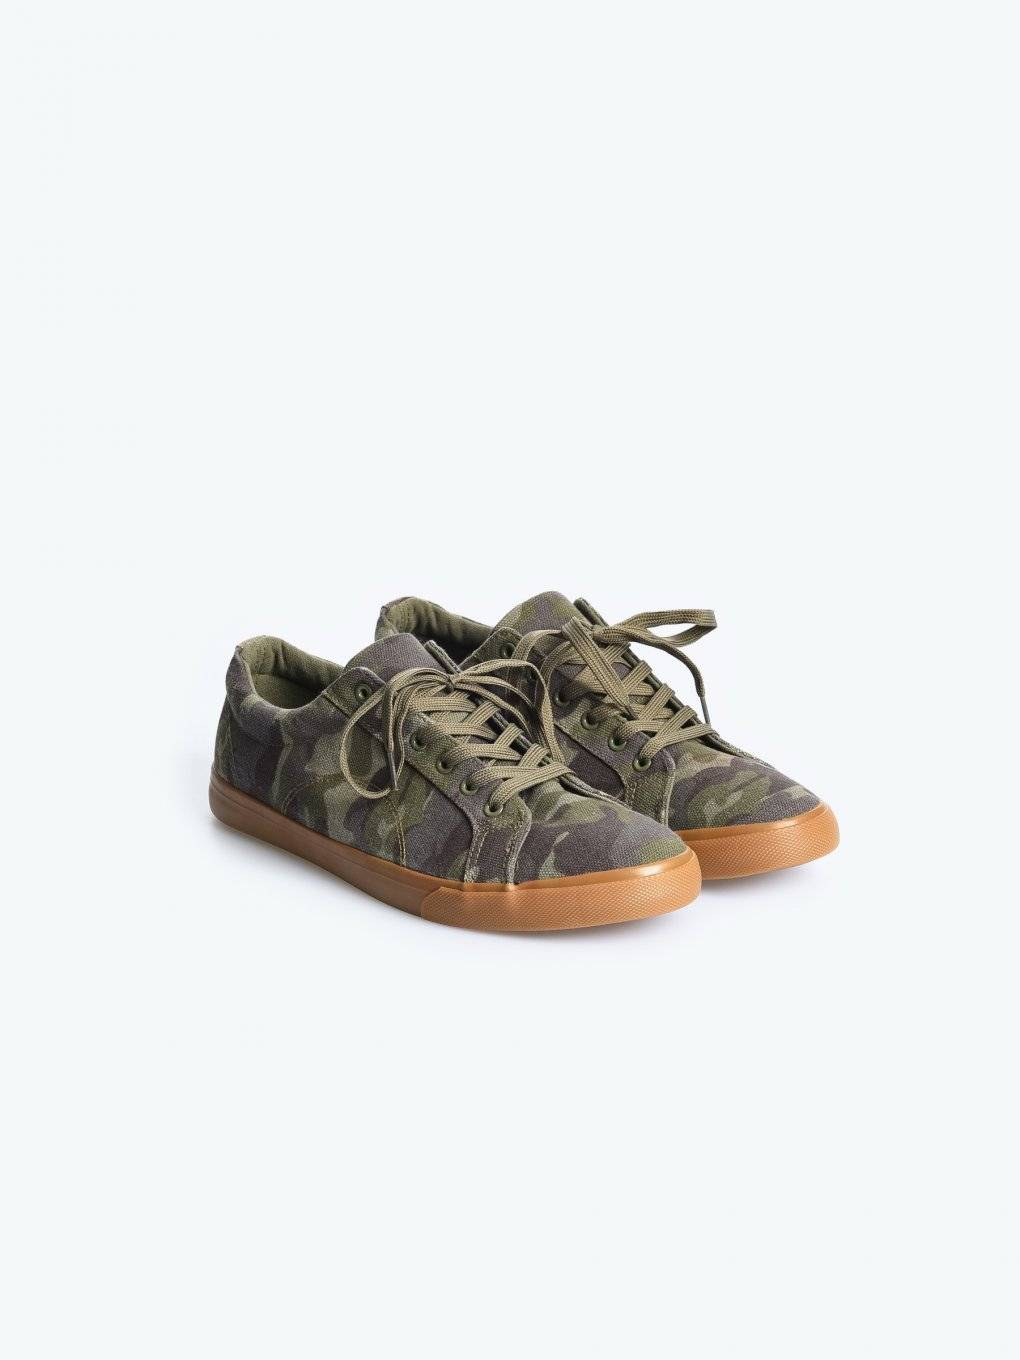 Lace-up camo sneakers